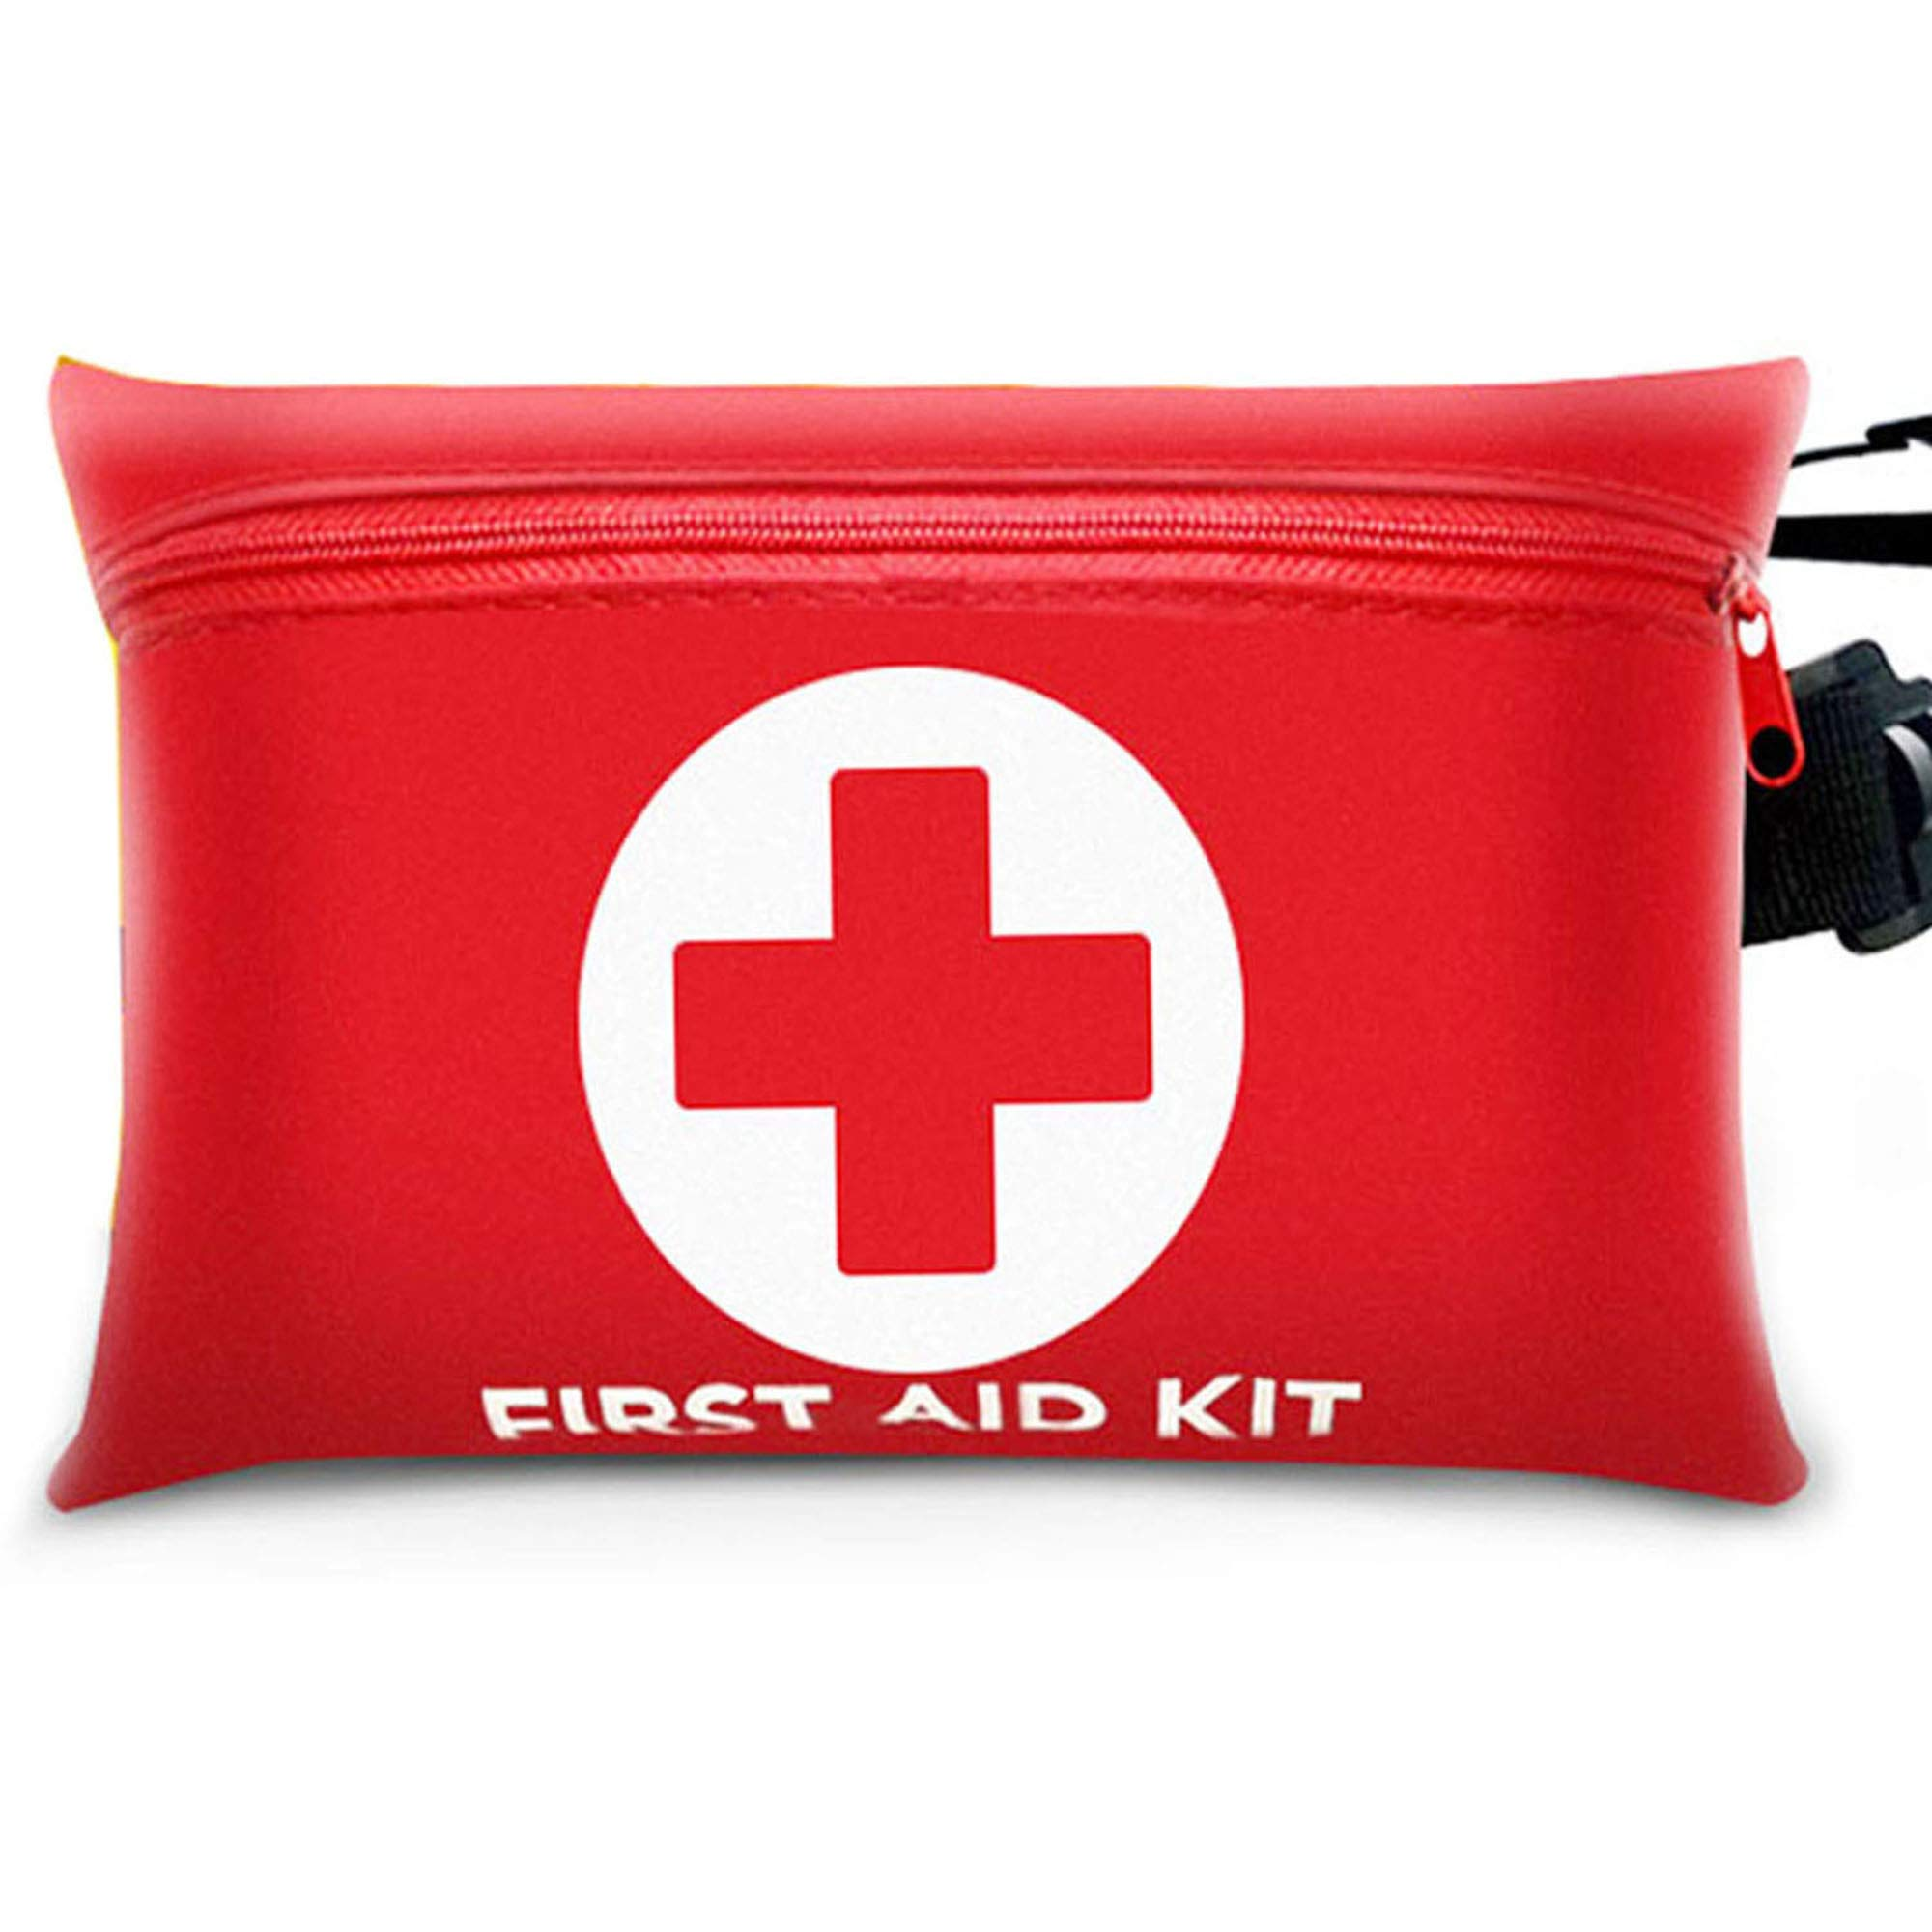 First Aid Kits, 101 Pieces Emergency Bags with Survival Basic Supplies for Outdoors, Camping, Hiking, Home, Office, Travel, Car by DerLin